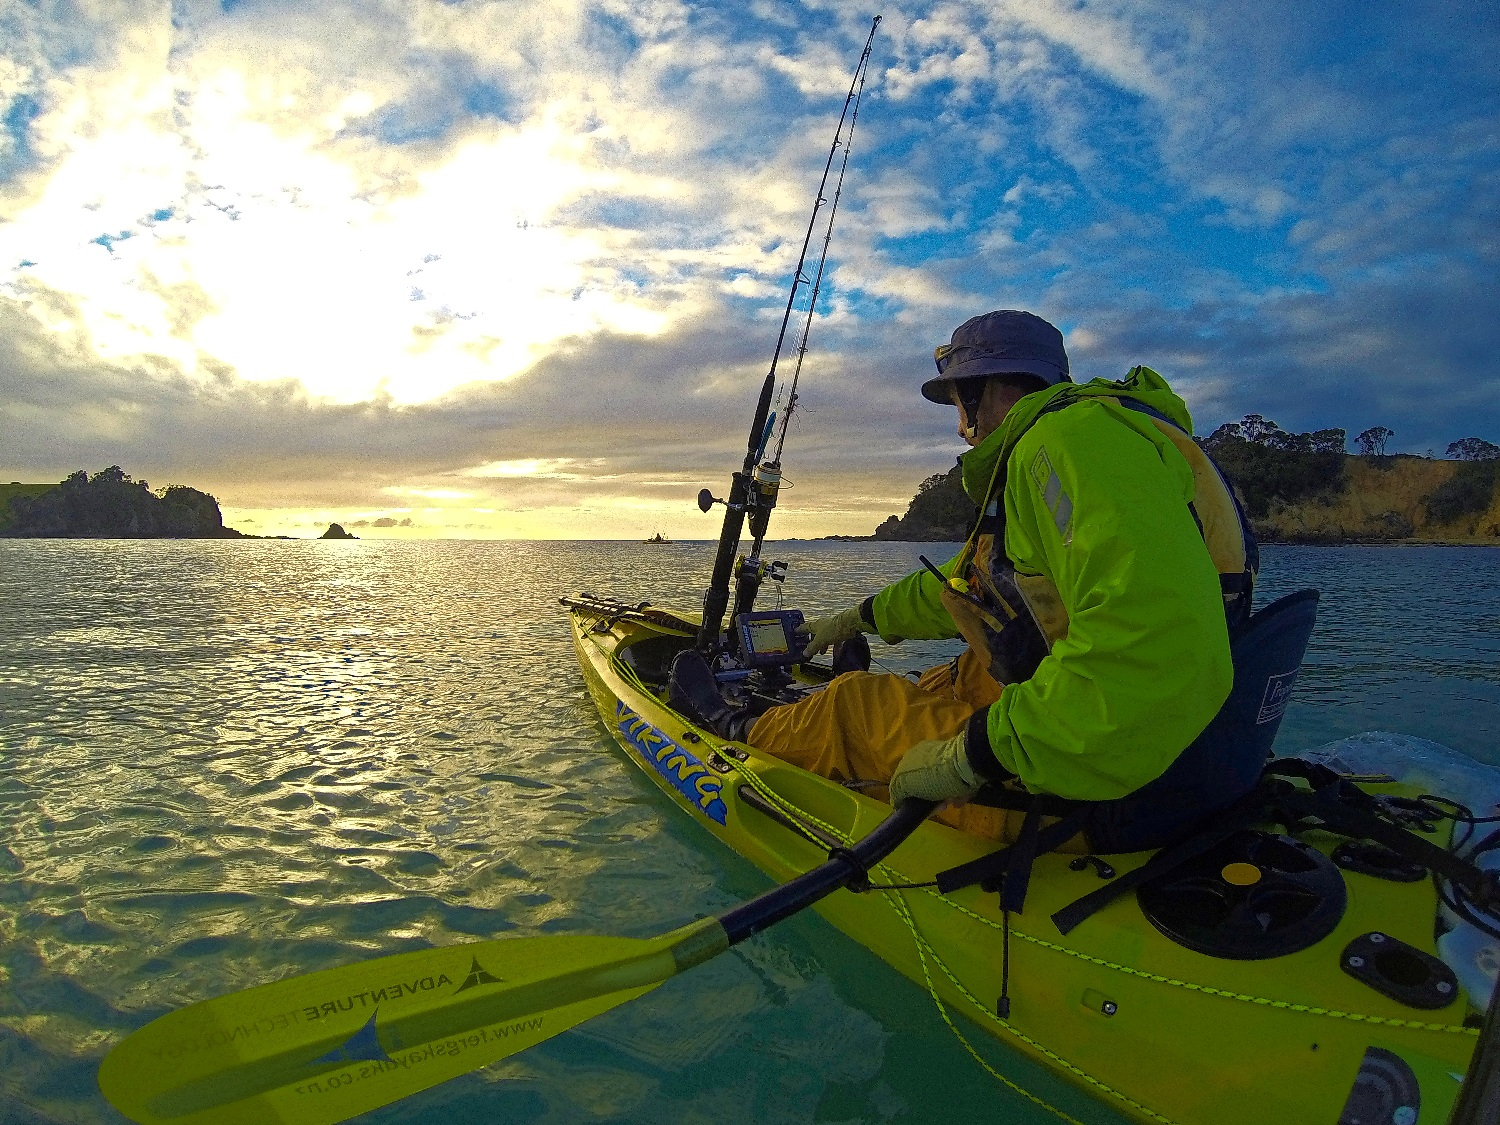 Lowrance Elite 5 sounder to locate fish when kayak fishing in shallows